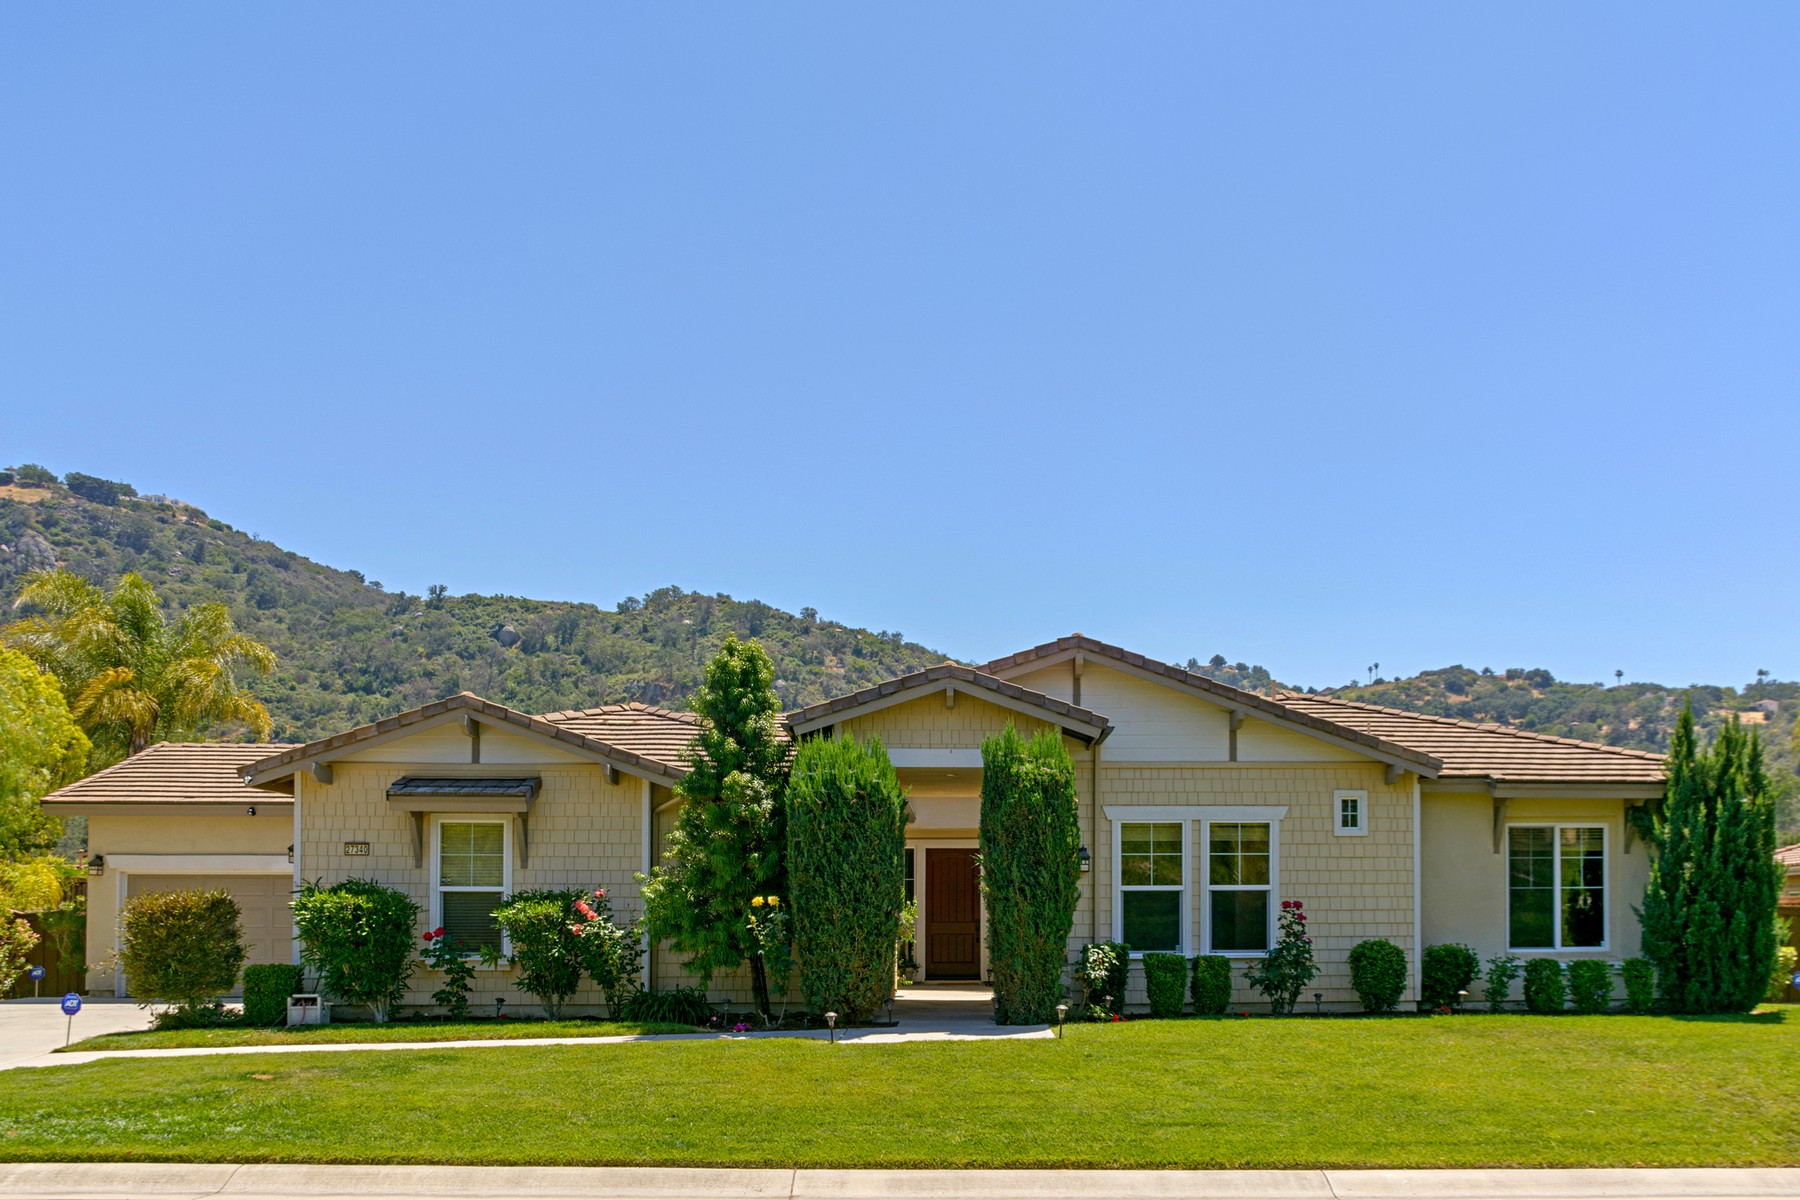 Single Family Home for Sale at 27340 Saint Andrews Lane Valley Center, California, 92082 United States